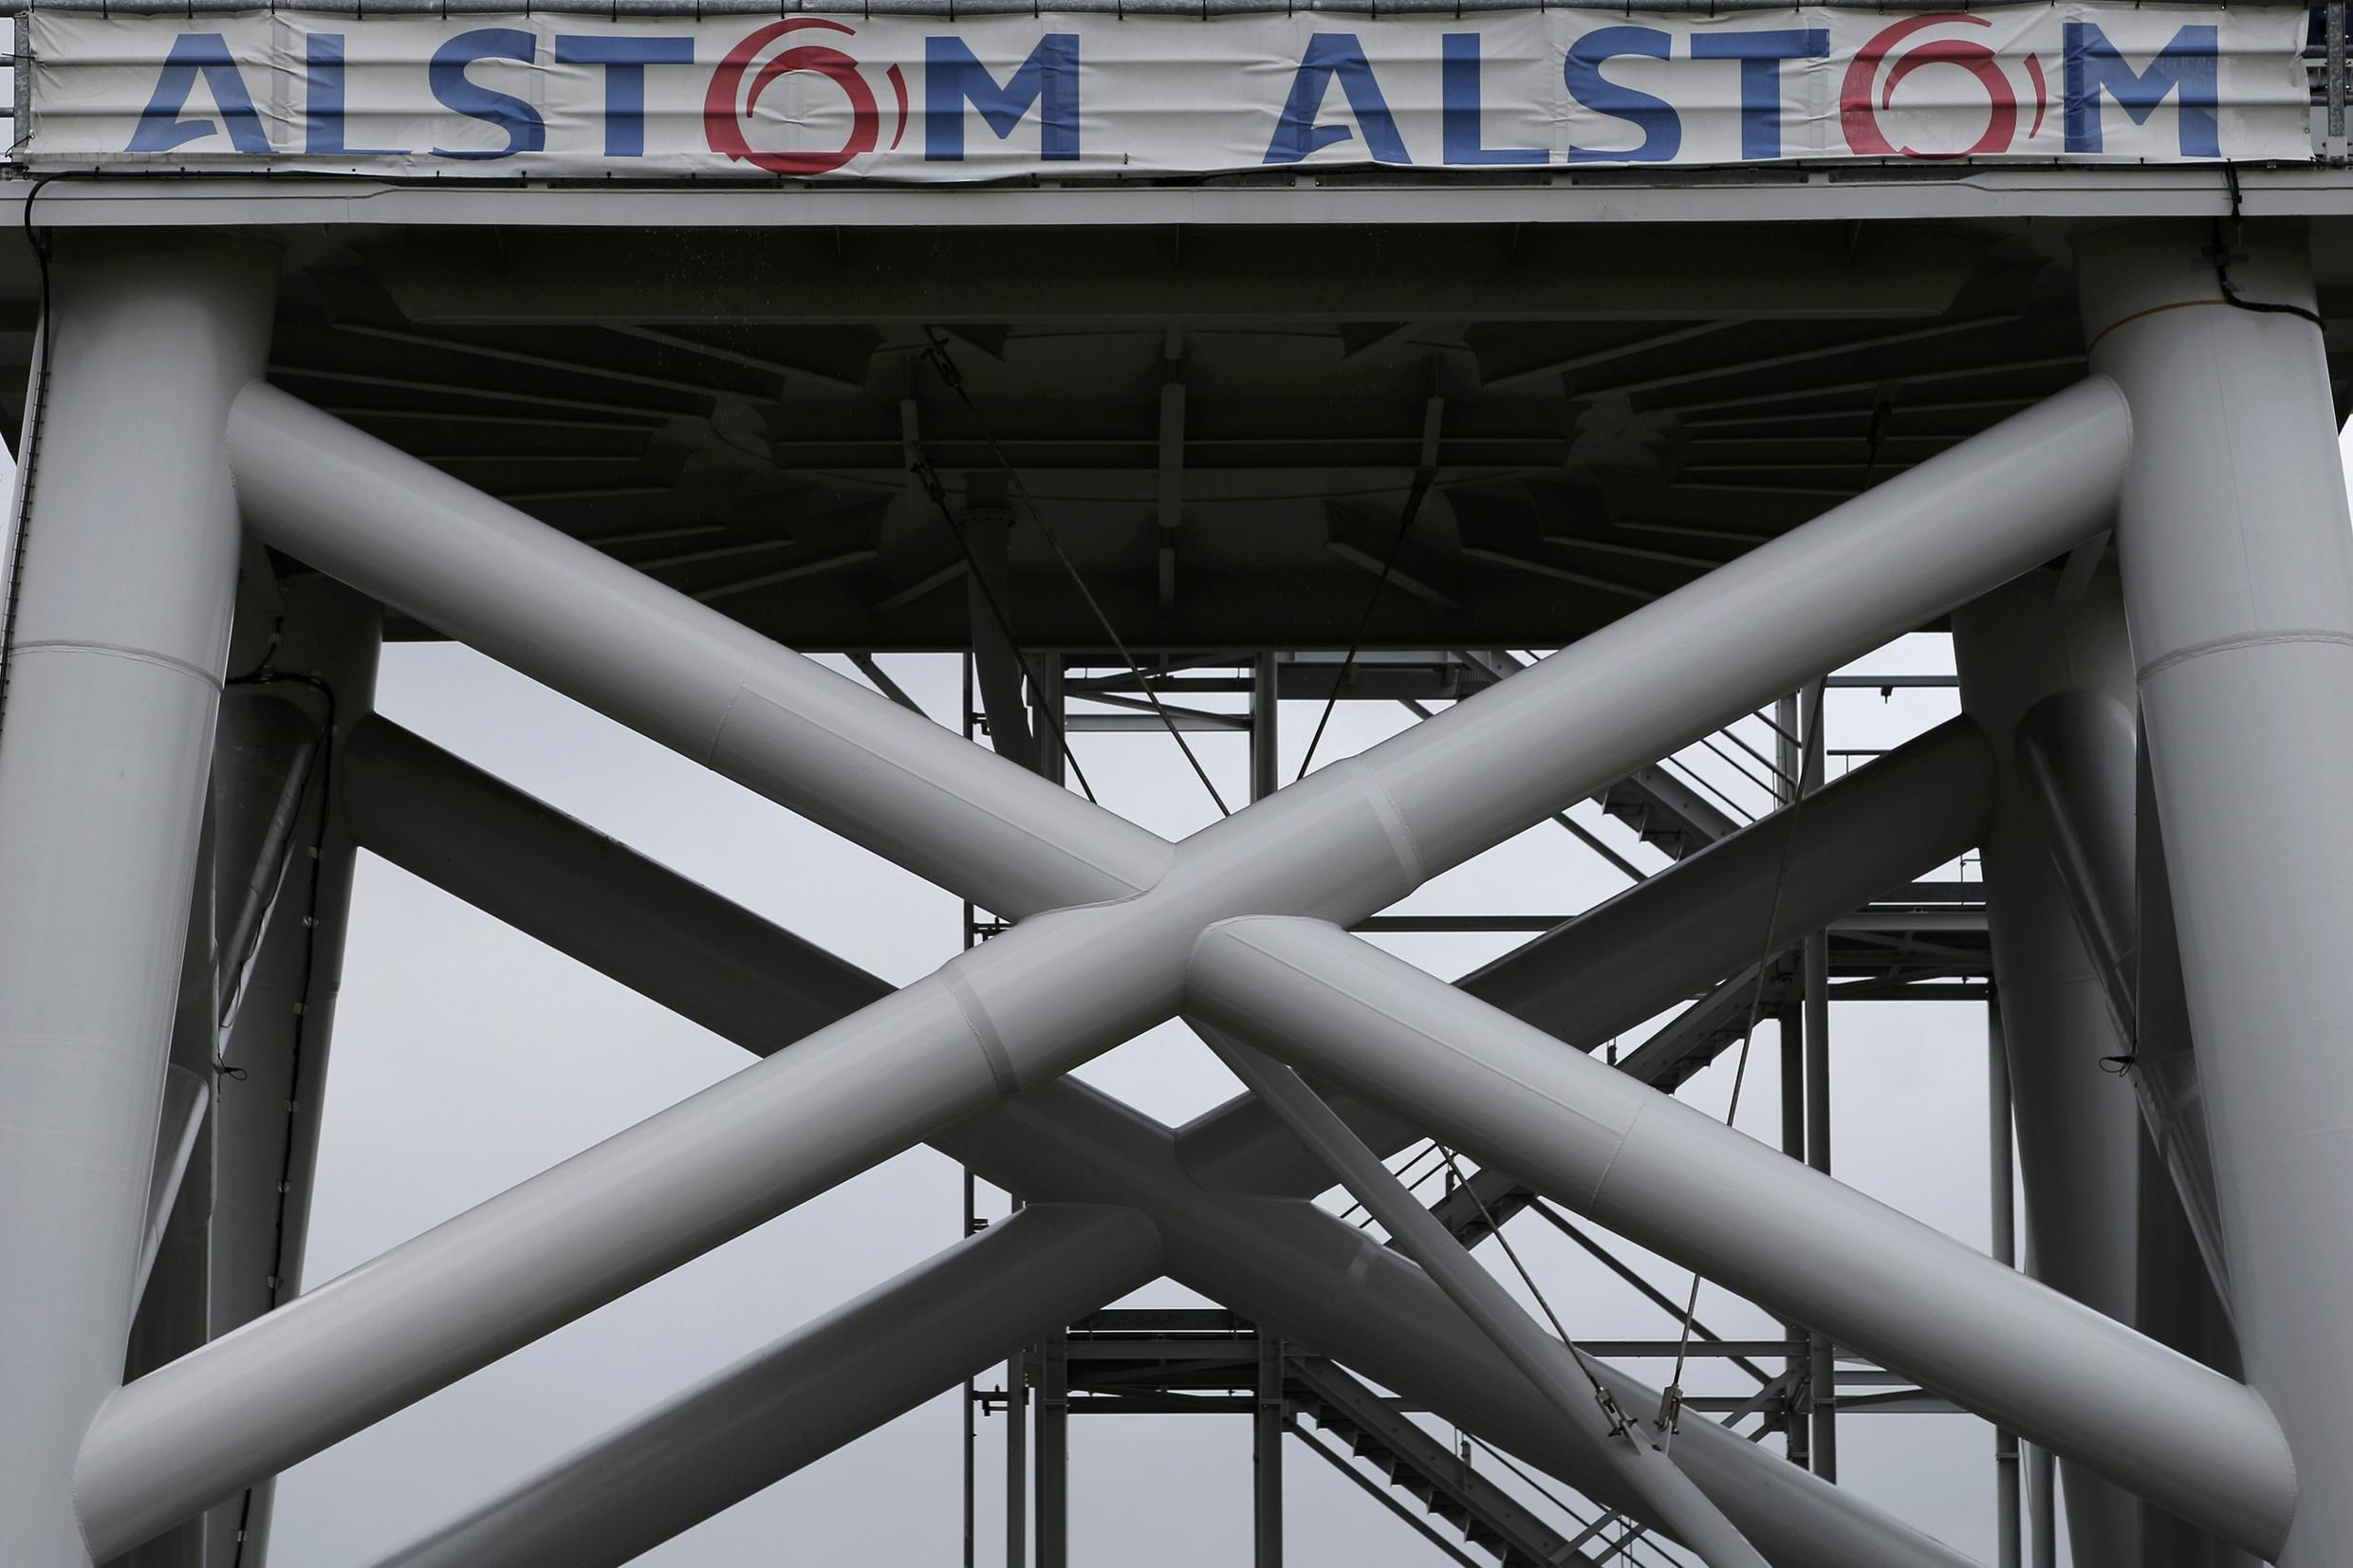 Alstom's board may clash with the French government over GE's offer